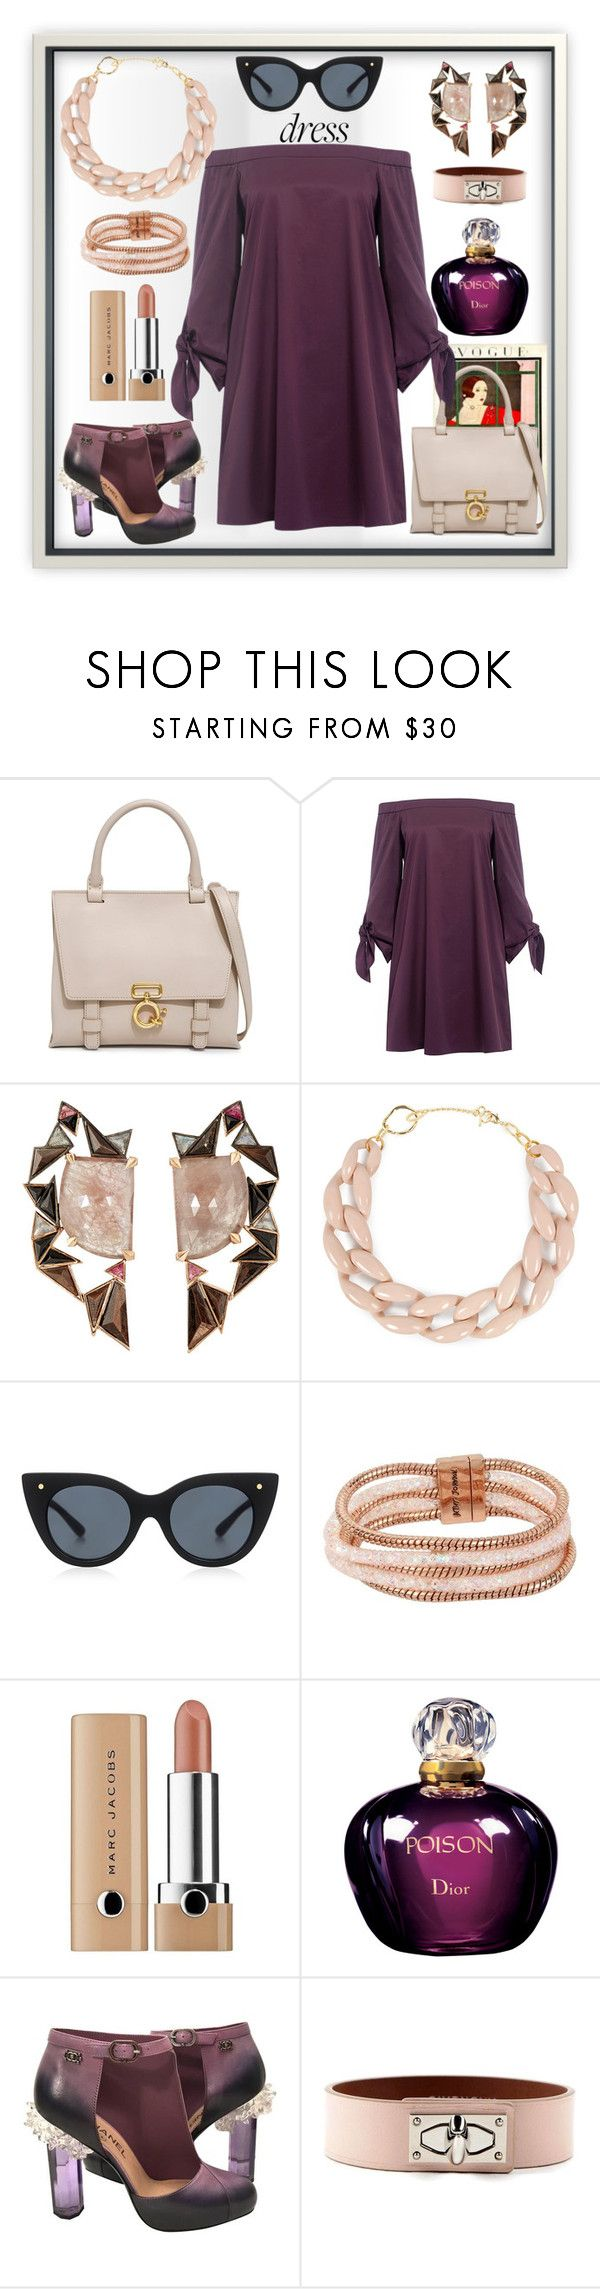 """""""That Girl Is Poison ☠"""" by mavinex-de-nova ❤ liked on Polyvore featuring 10 Crosby Derek Lam, TIBI, Nak Armstrong, DIANA BROUSSARD, Le Specs Luxe, Betsey Johnson, Marc Jacobs, Christian Dior, Chanel and Givenchy"""